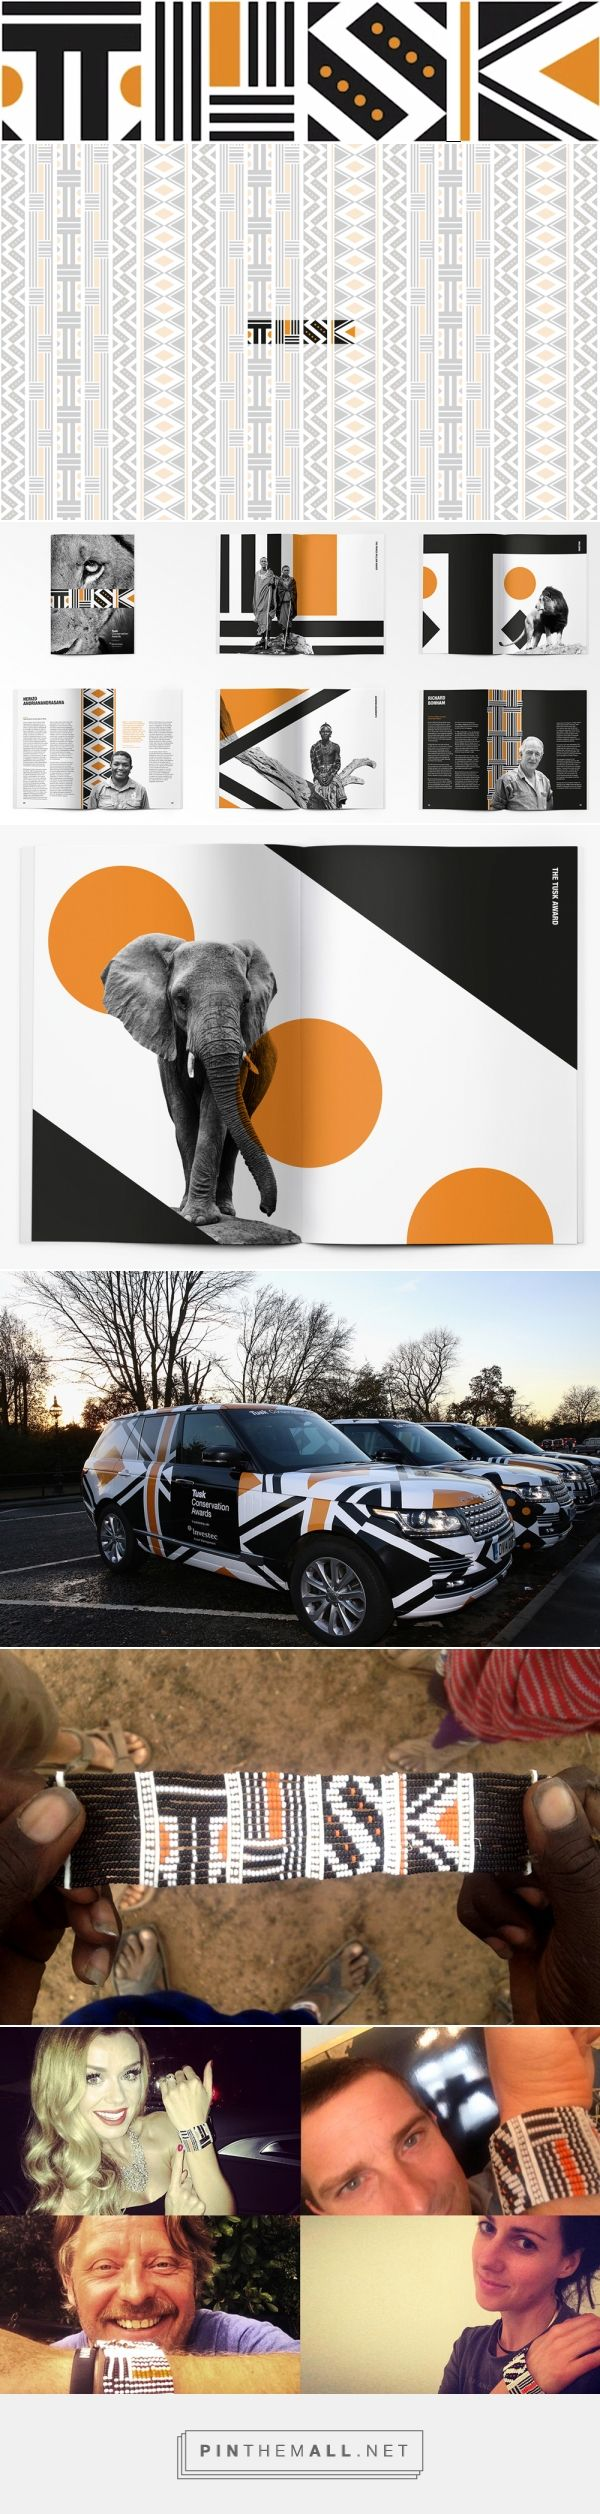 New Logo and #Identity for Tusk Conservation Awards by The Partners